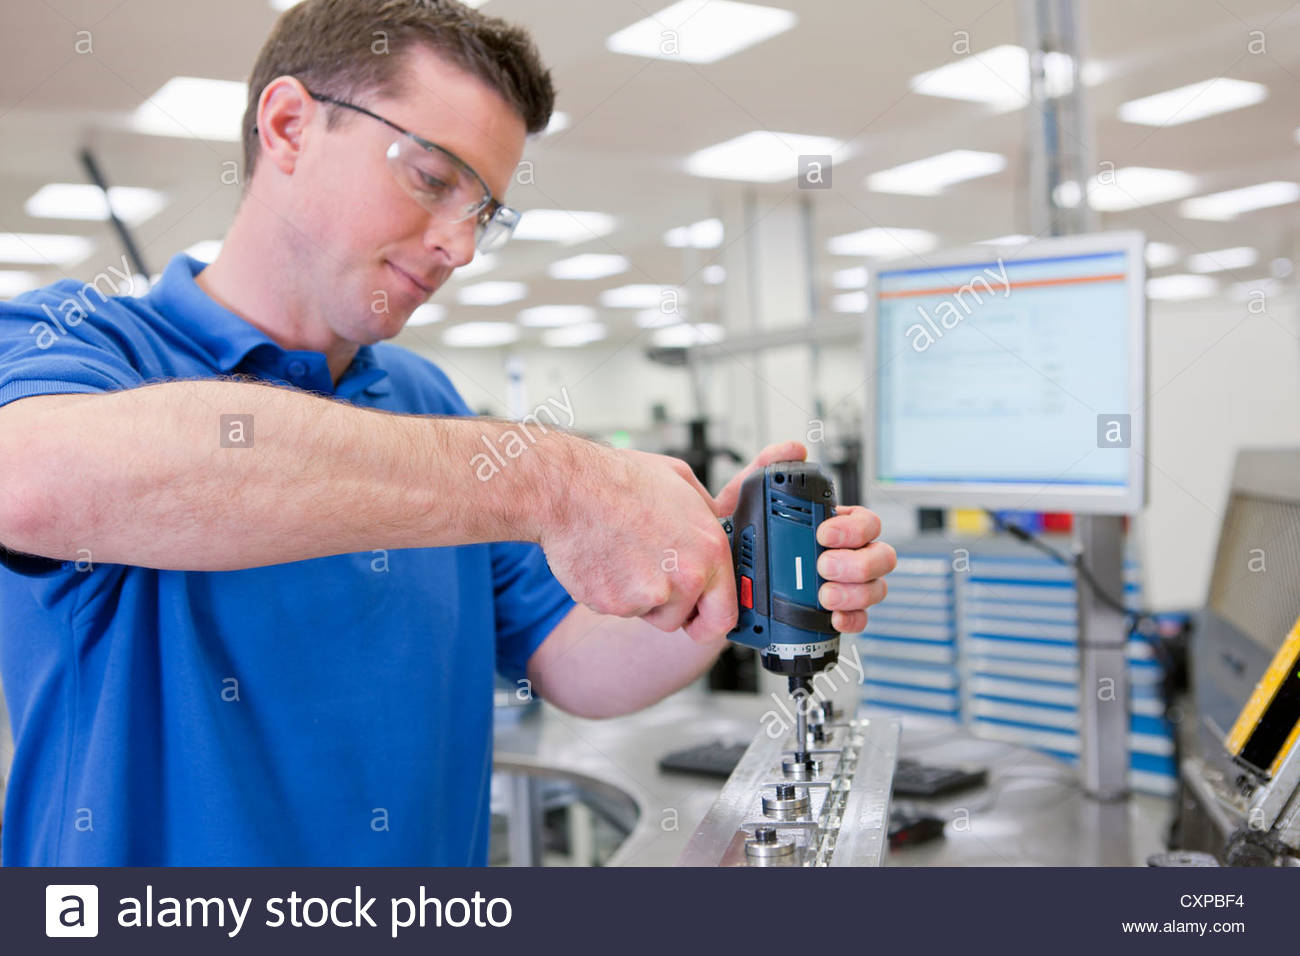 Technician assembling product in hi-tech manufacturing plant - Stock Image